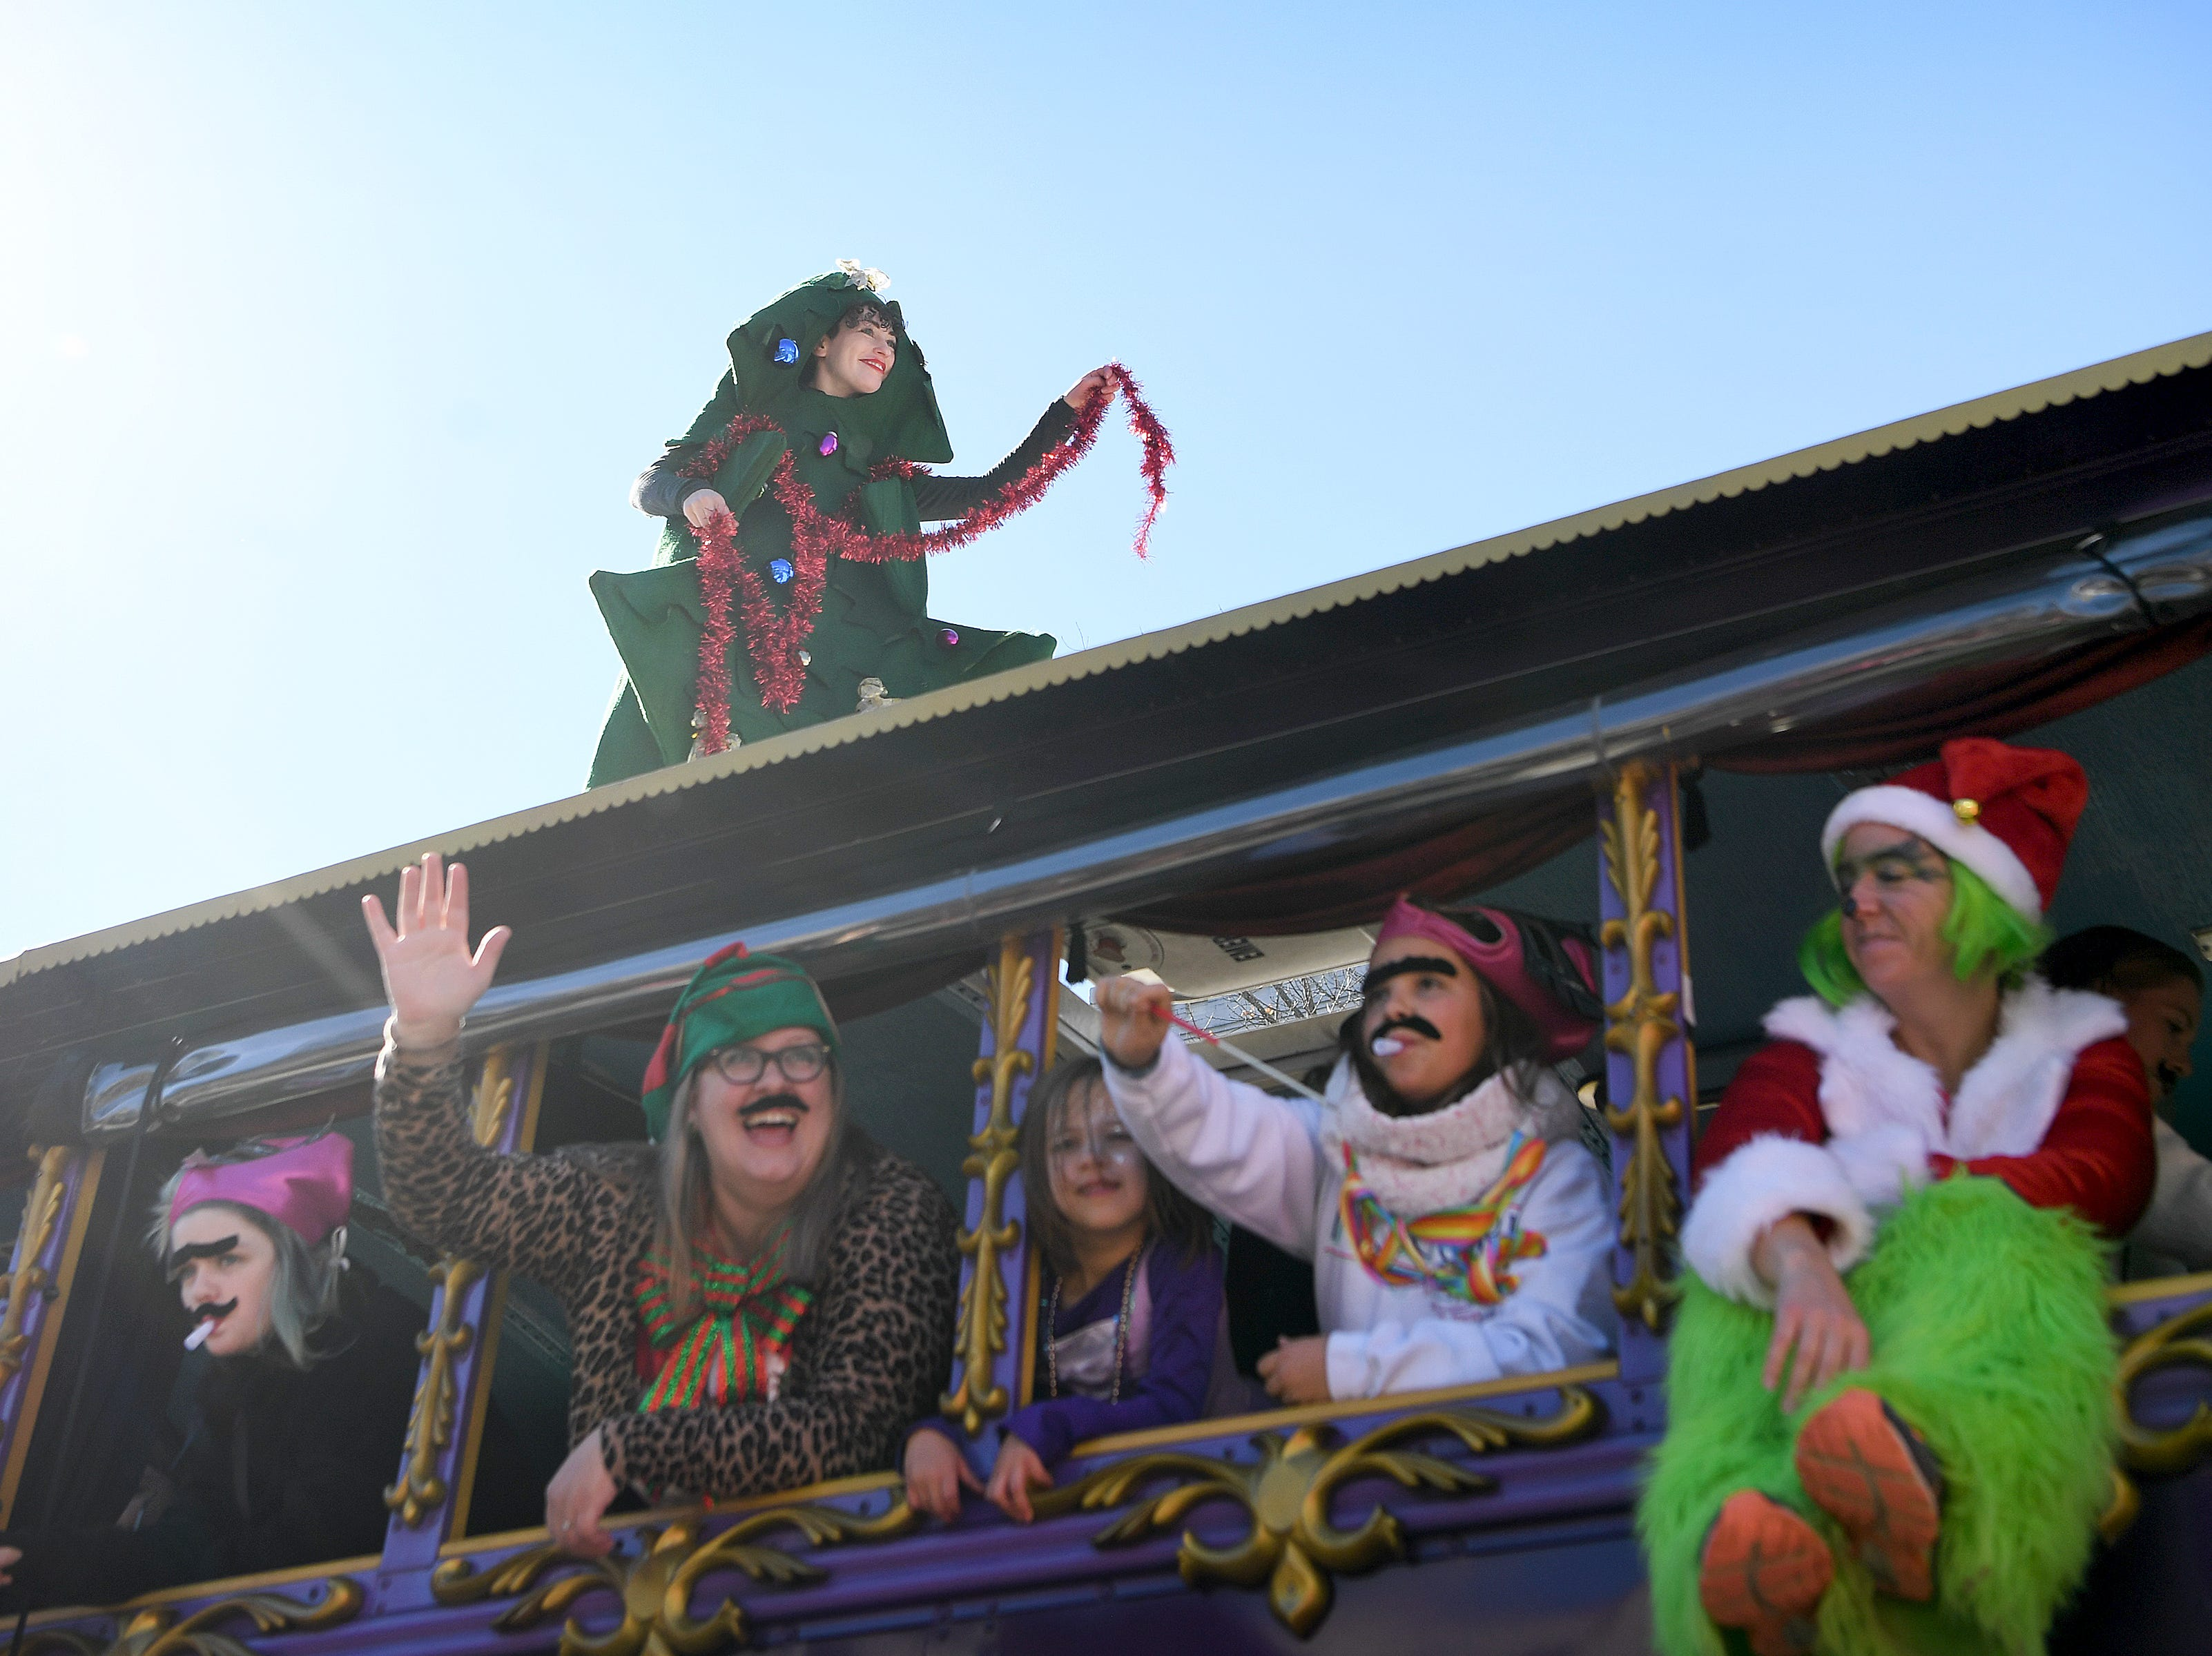 Paraders aboard the LaZoom bus wave to the crowd during the 2018 Asheville Holiday Parade on Nov. 17, 2018. More than 100 entries walked through the streets lined with spectators in the parade this year.